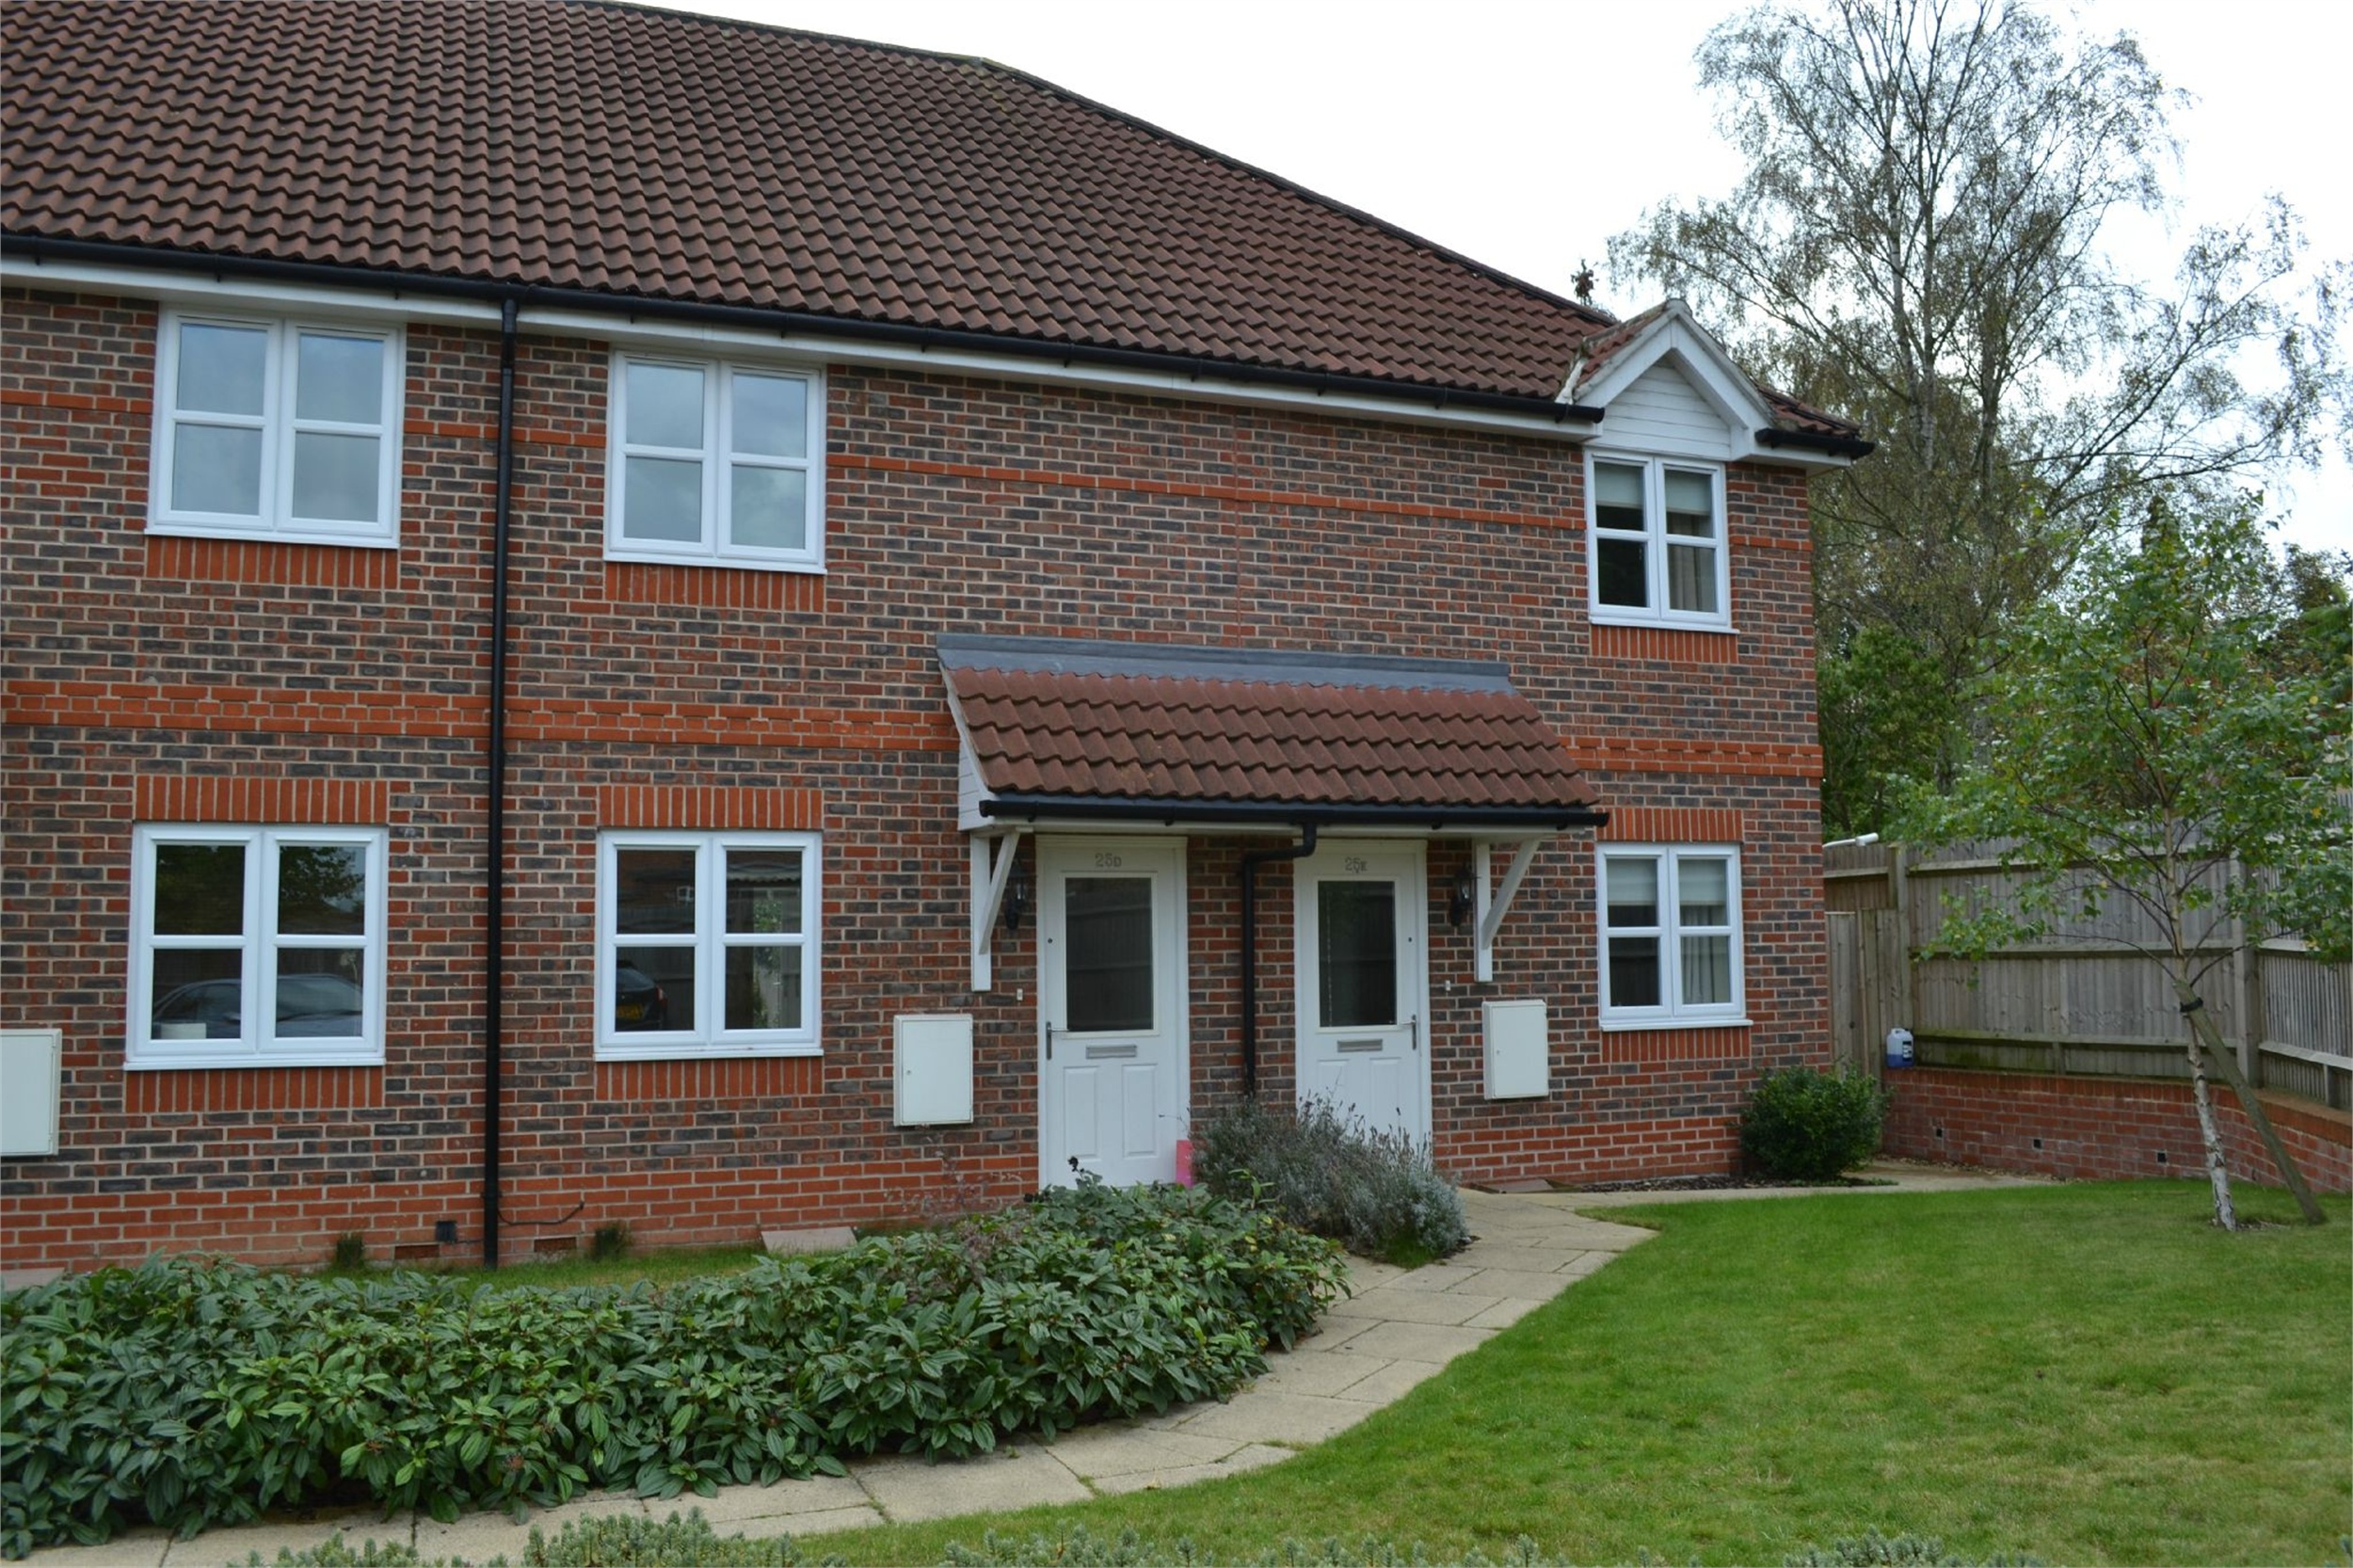 Coniston Close, Woodley, Berkshire RG5